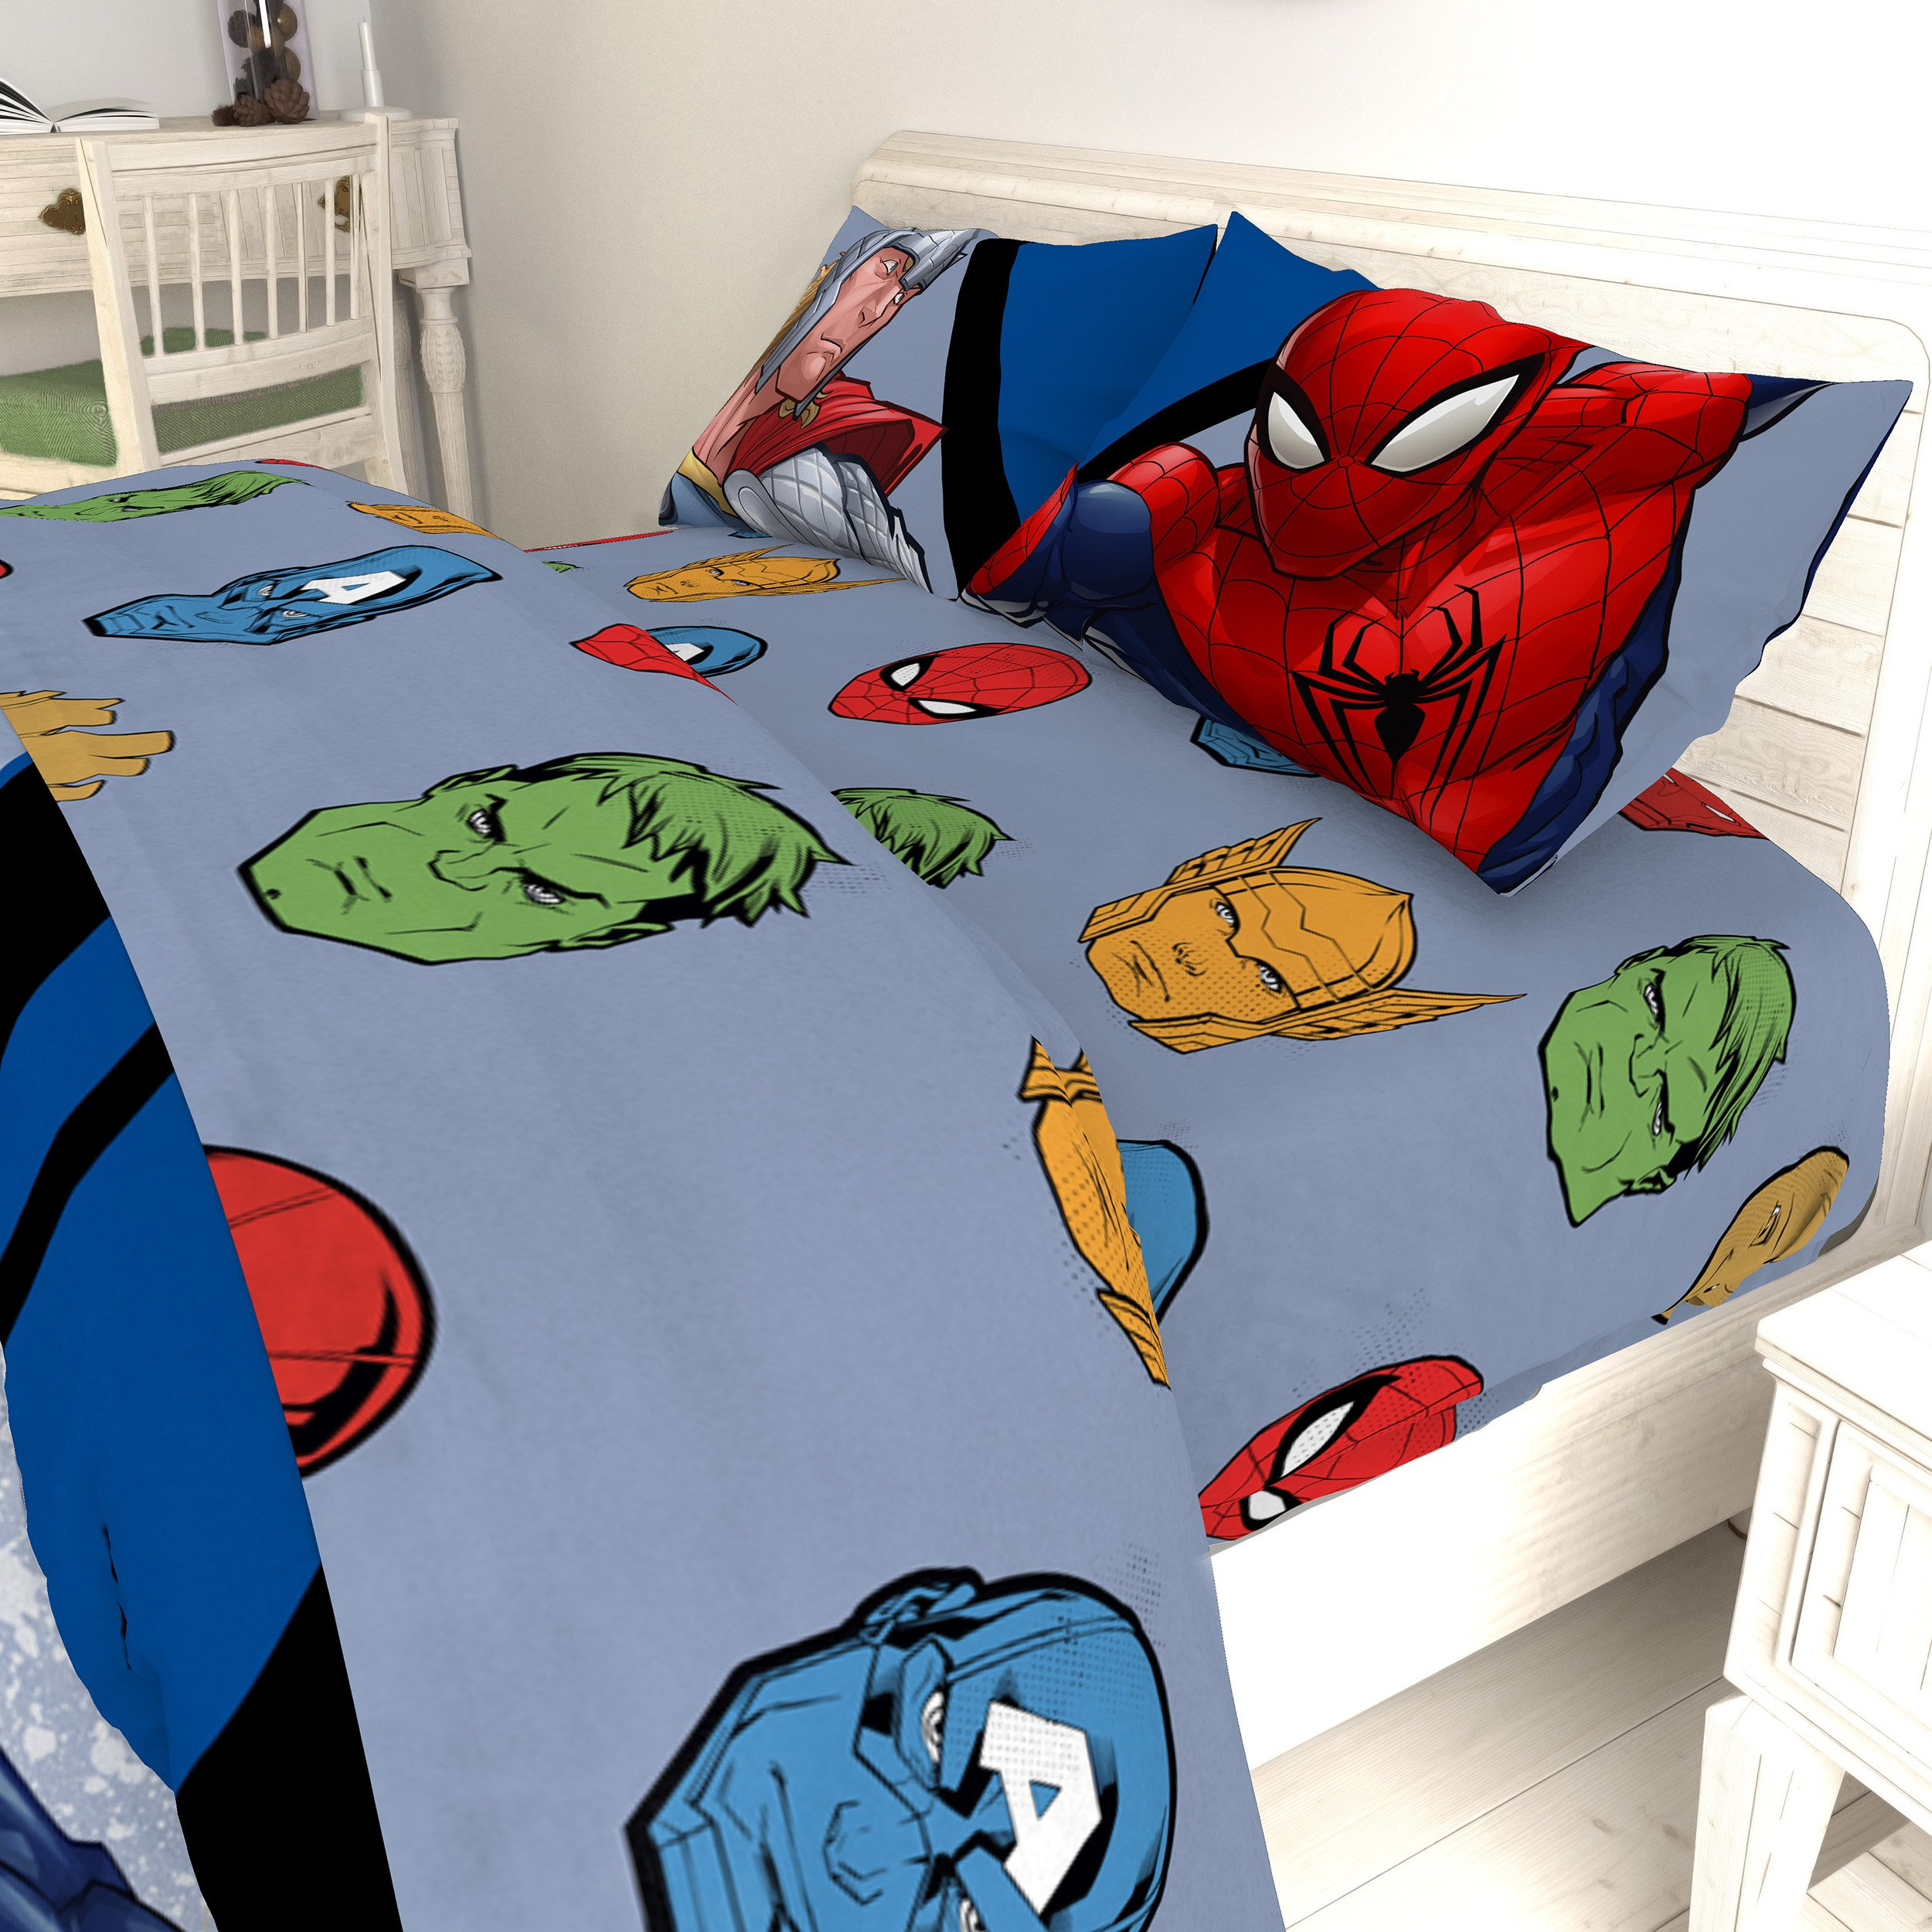 TN 4 Piece Kids Grey Avengers Themed Sheet Set Full Sized, Green Hulk Bedding Spiderman Captain America Superhero Pattern Gray Color Red Brown Yellow, Polyester